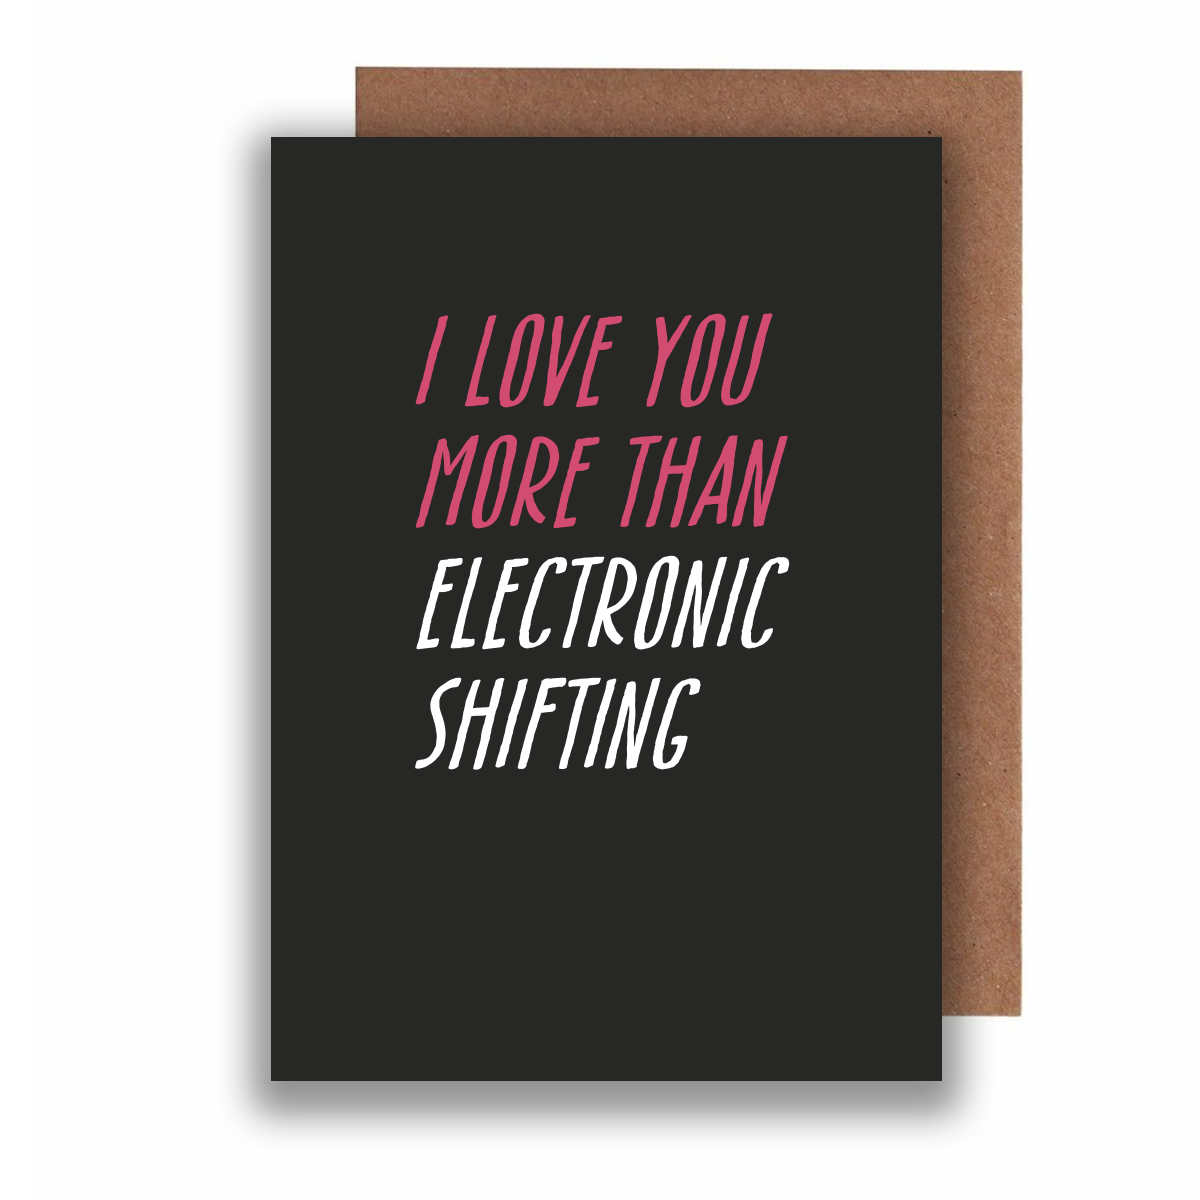 Electronic Shifting - Honest Valentines Card